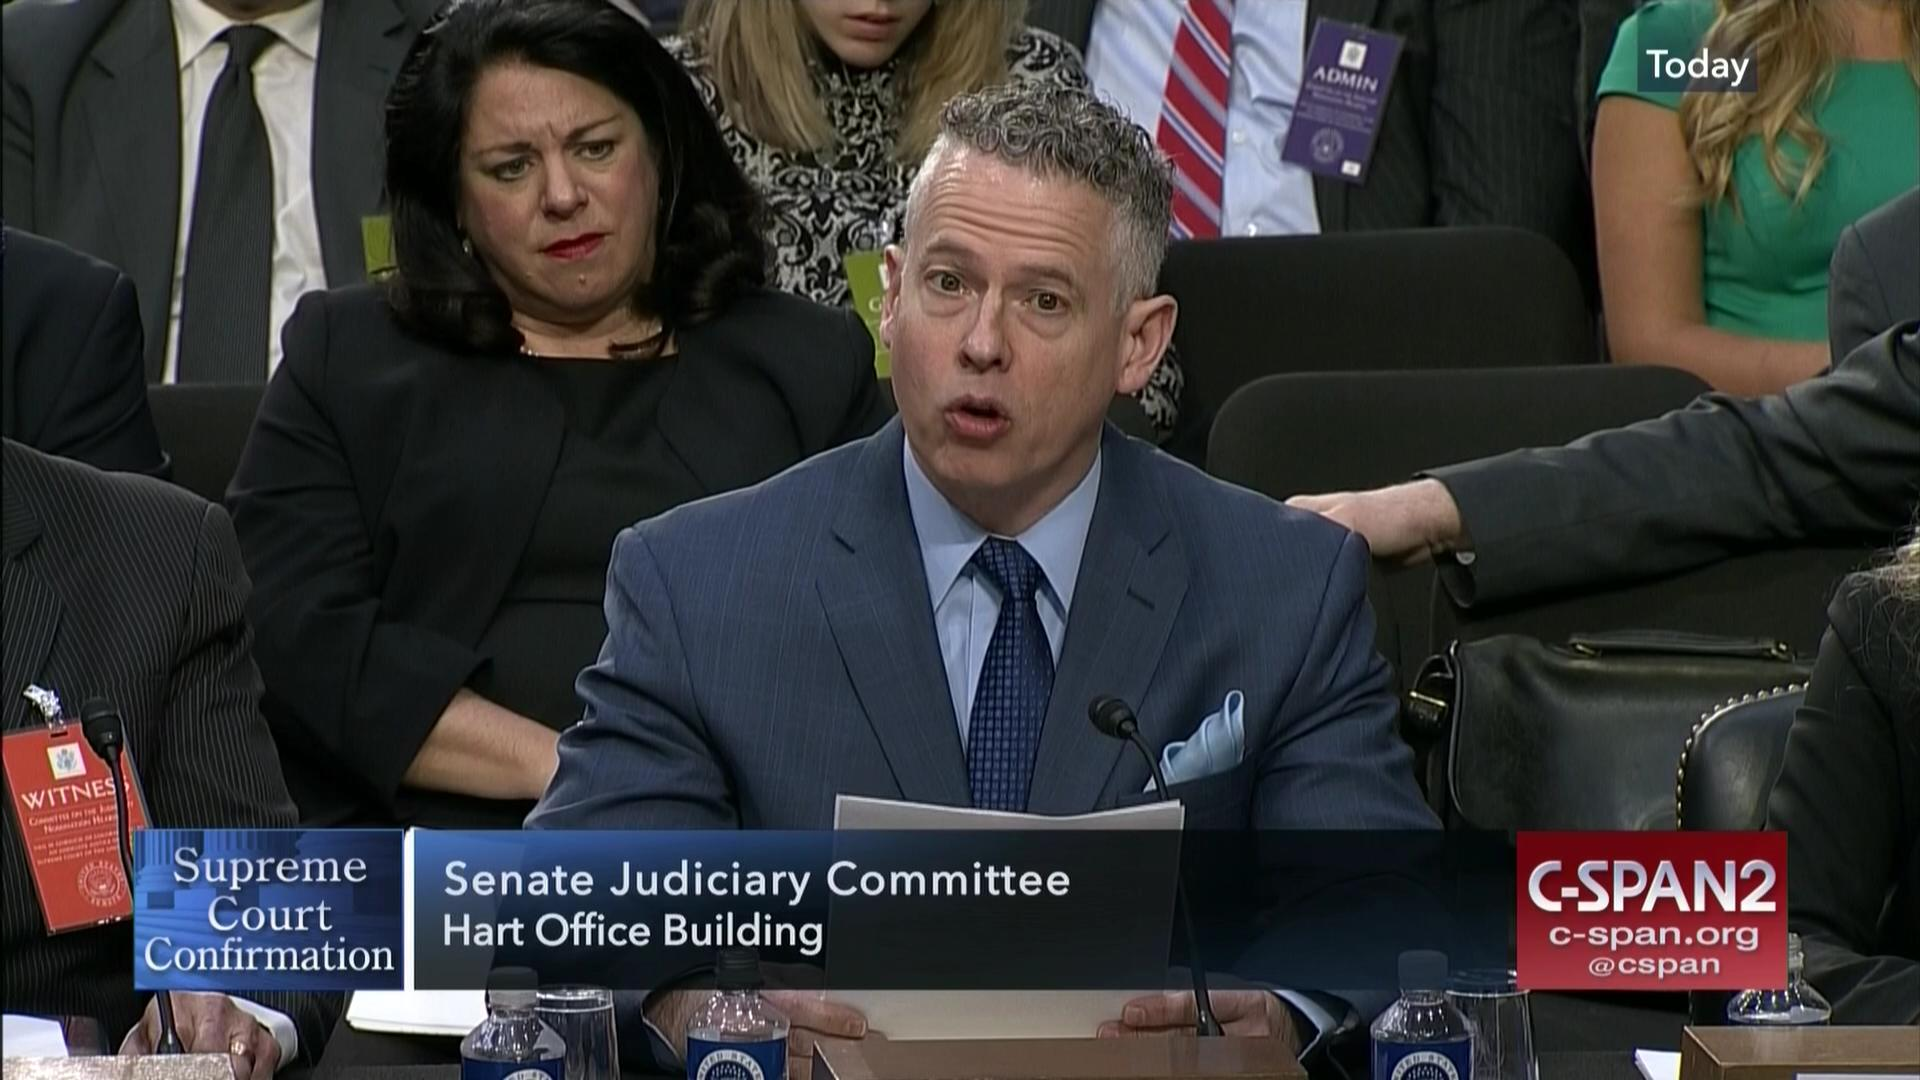 Jeff Perkins Testifys SCJ Confirmation Hearing | C SPAN.org